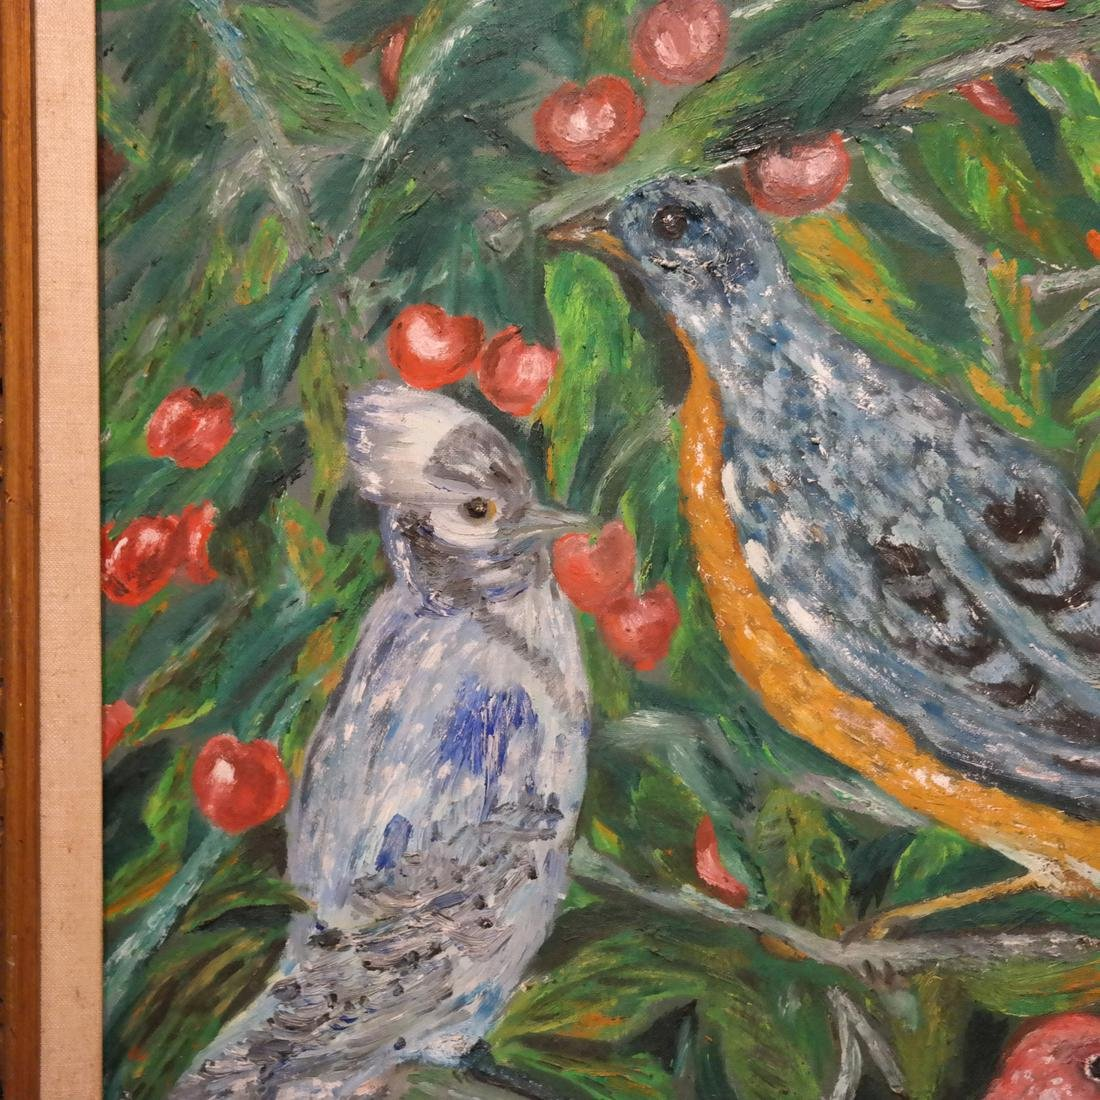 Flowers and Birds, Oil on Artist's Board - 5